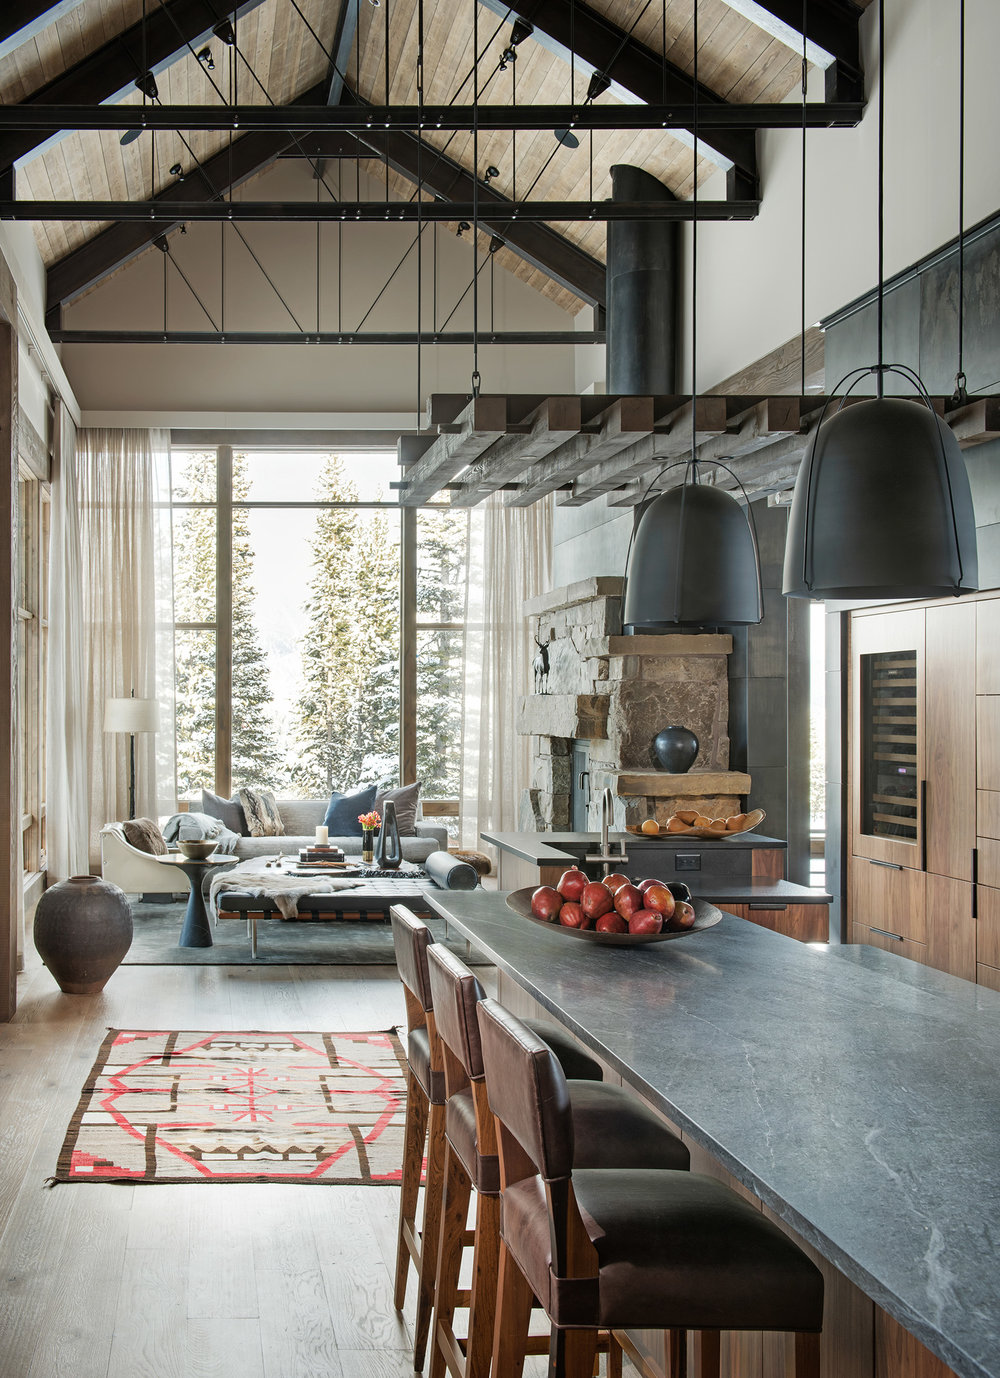 The vaulted ceilings make the space feel very grand.  I love the use of steel and wood. Gorgeous!